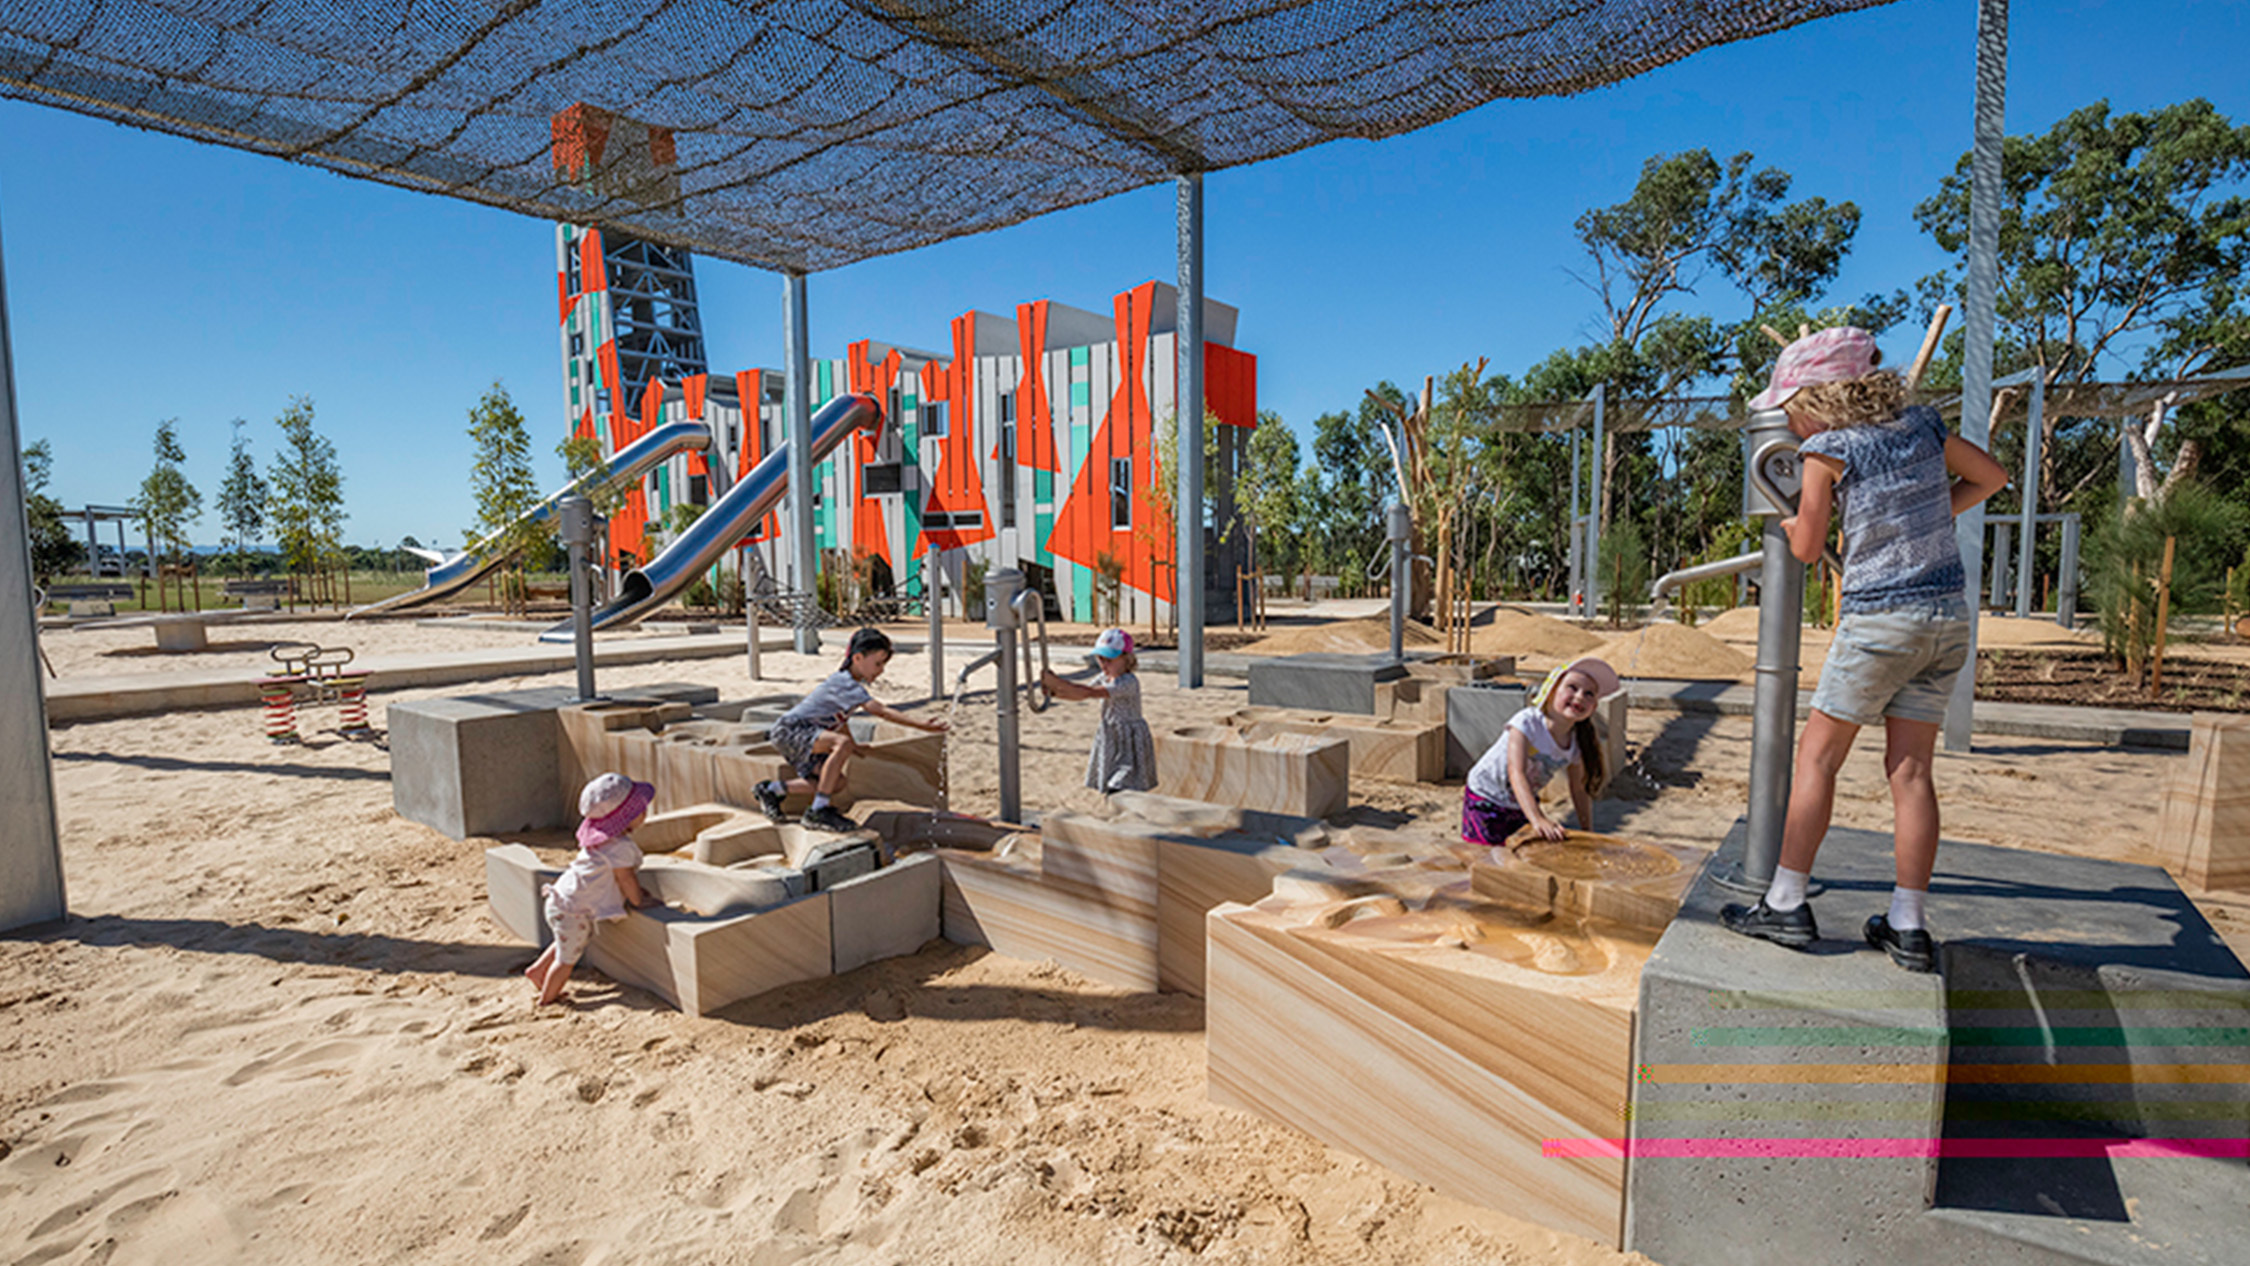 Big W Sand Pit The 15 Best Playgrounds In Sydney